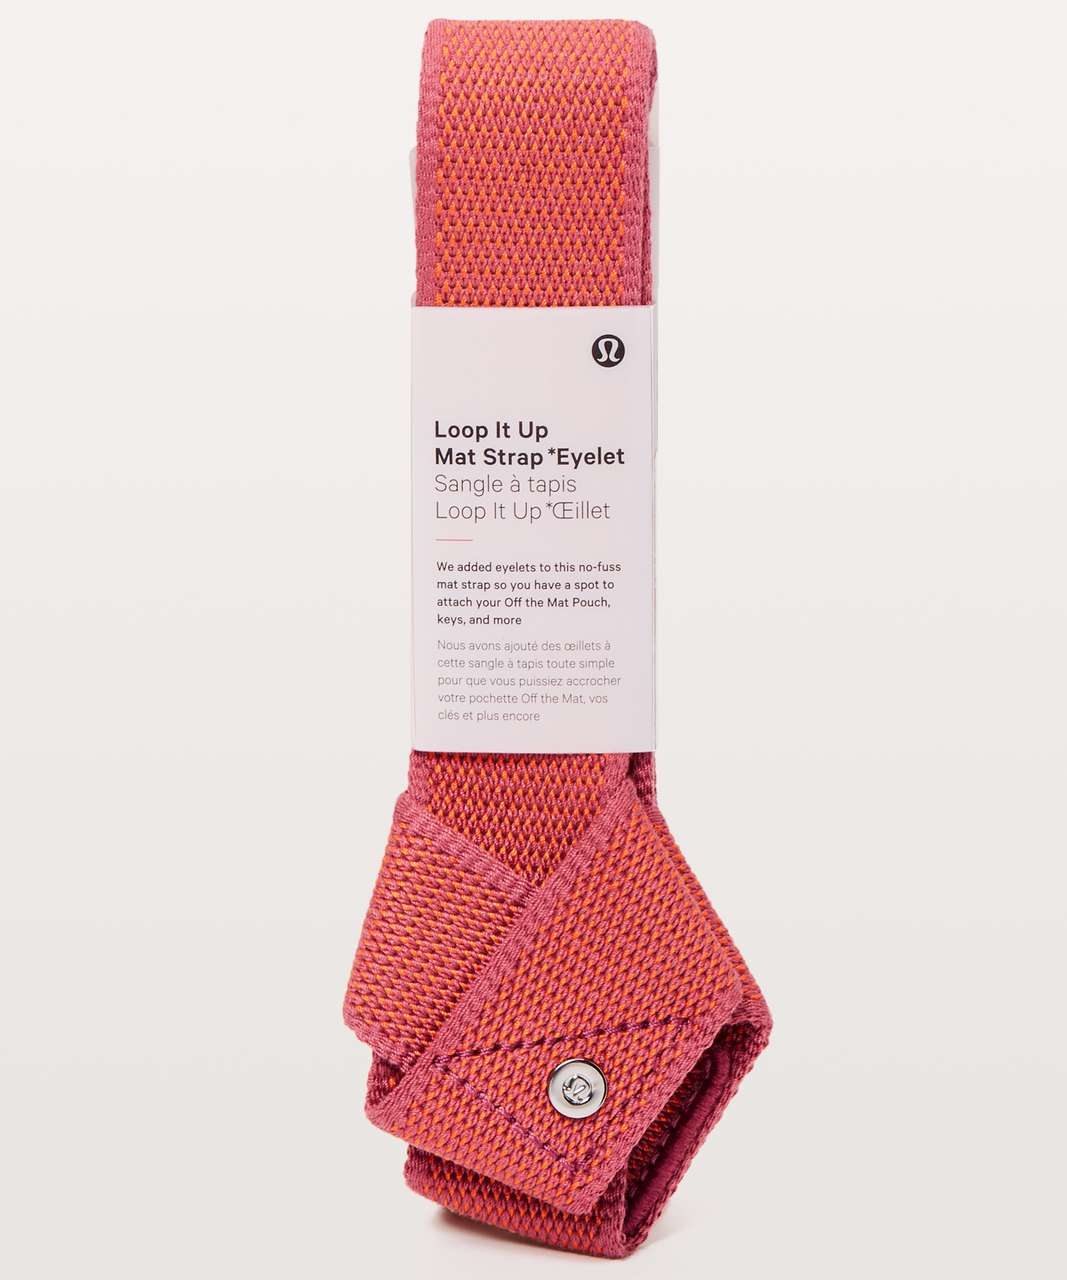 Lululemon Loop It Up Mat Strap *Eyelet - Cherry Dust / Orange Flash